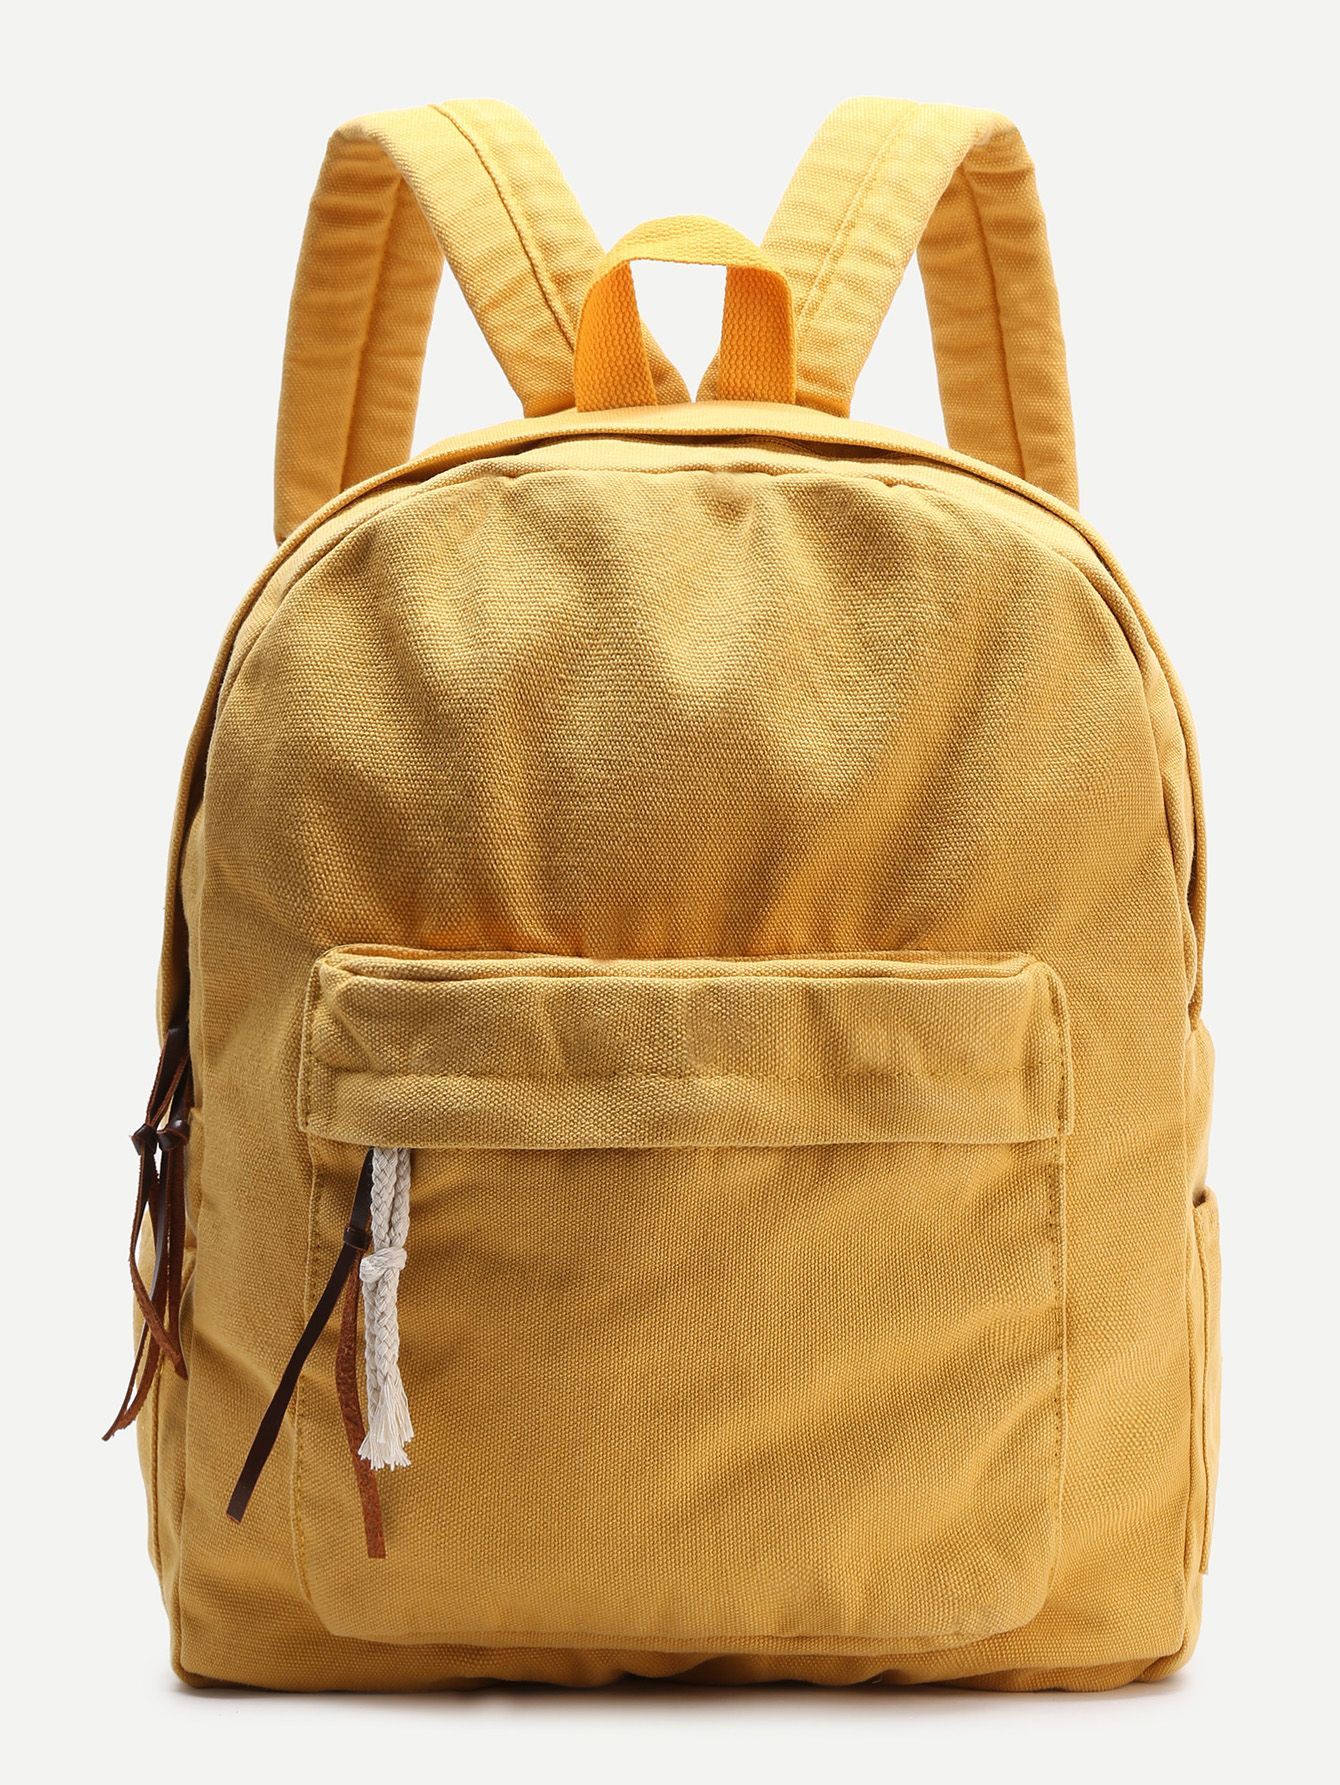 backpack3.jpg